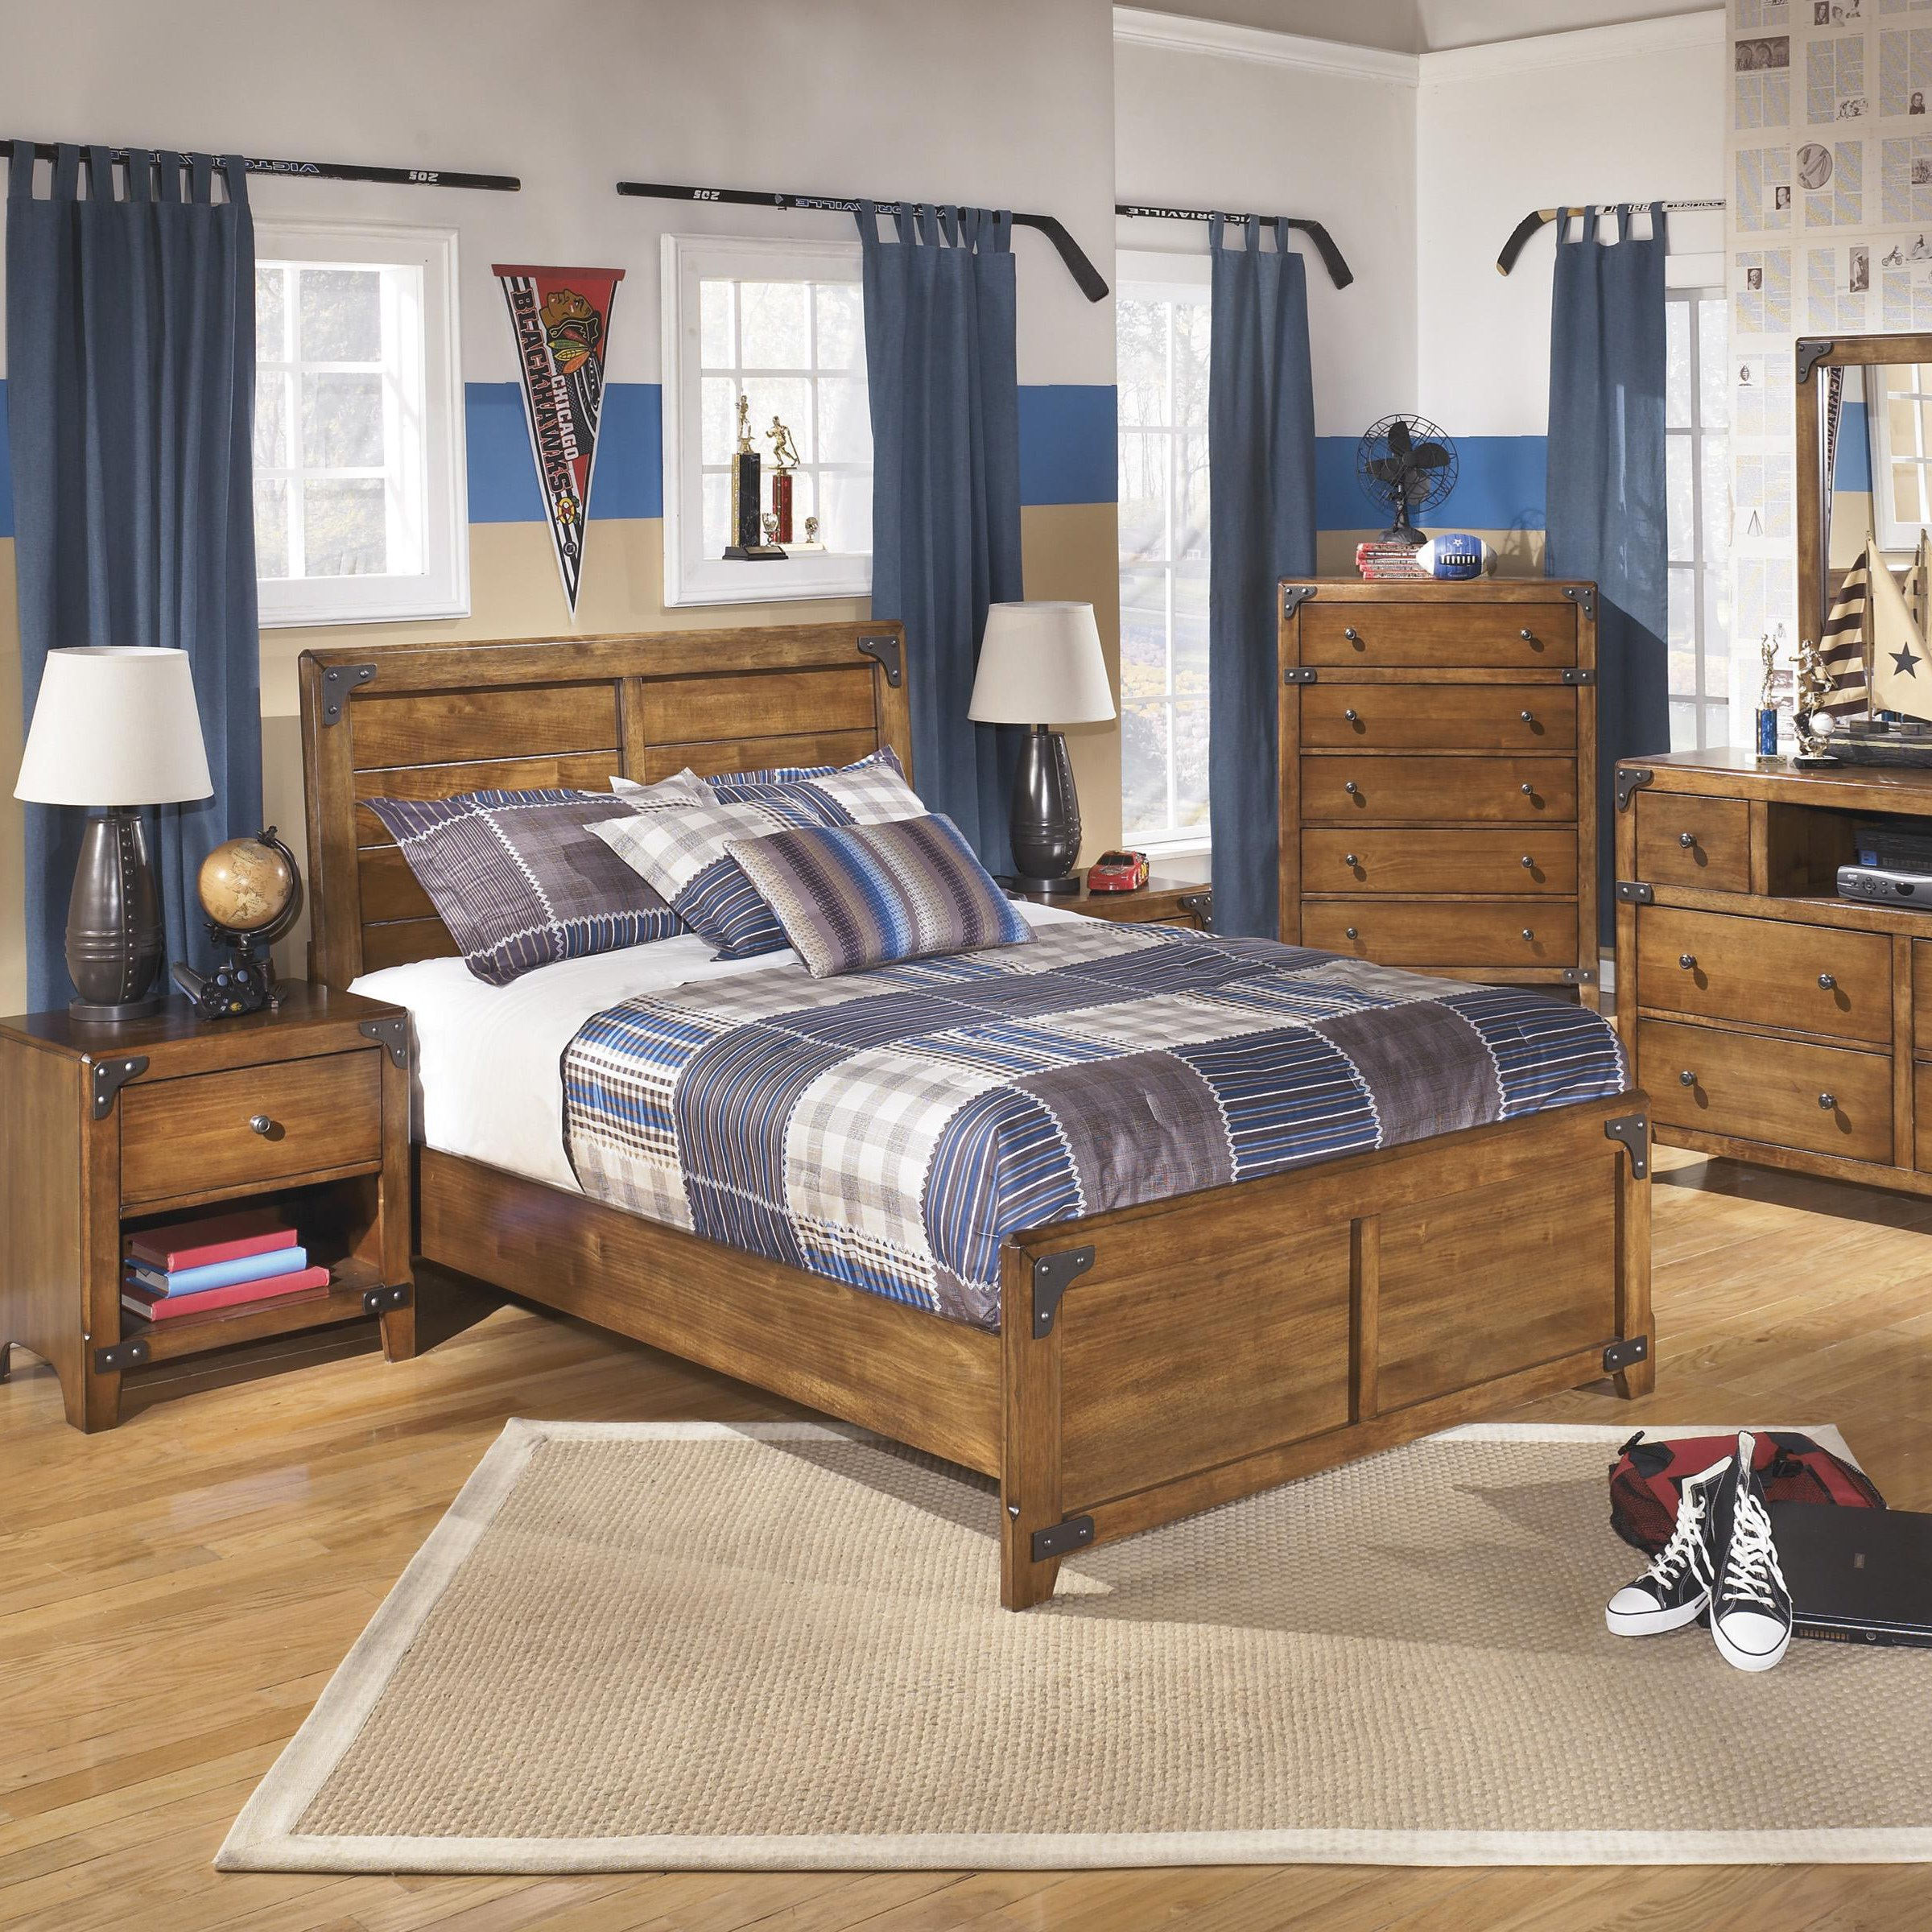 What Are Good Furniture Stores: Kids Furniture- Del Sol Furniture